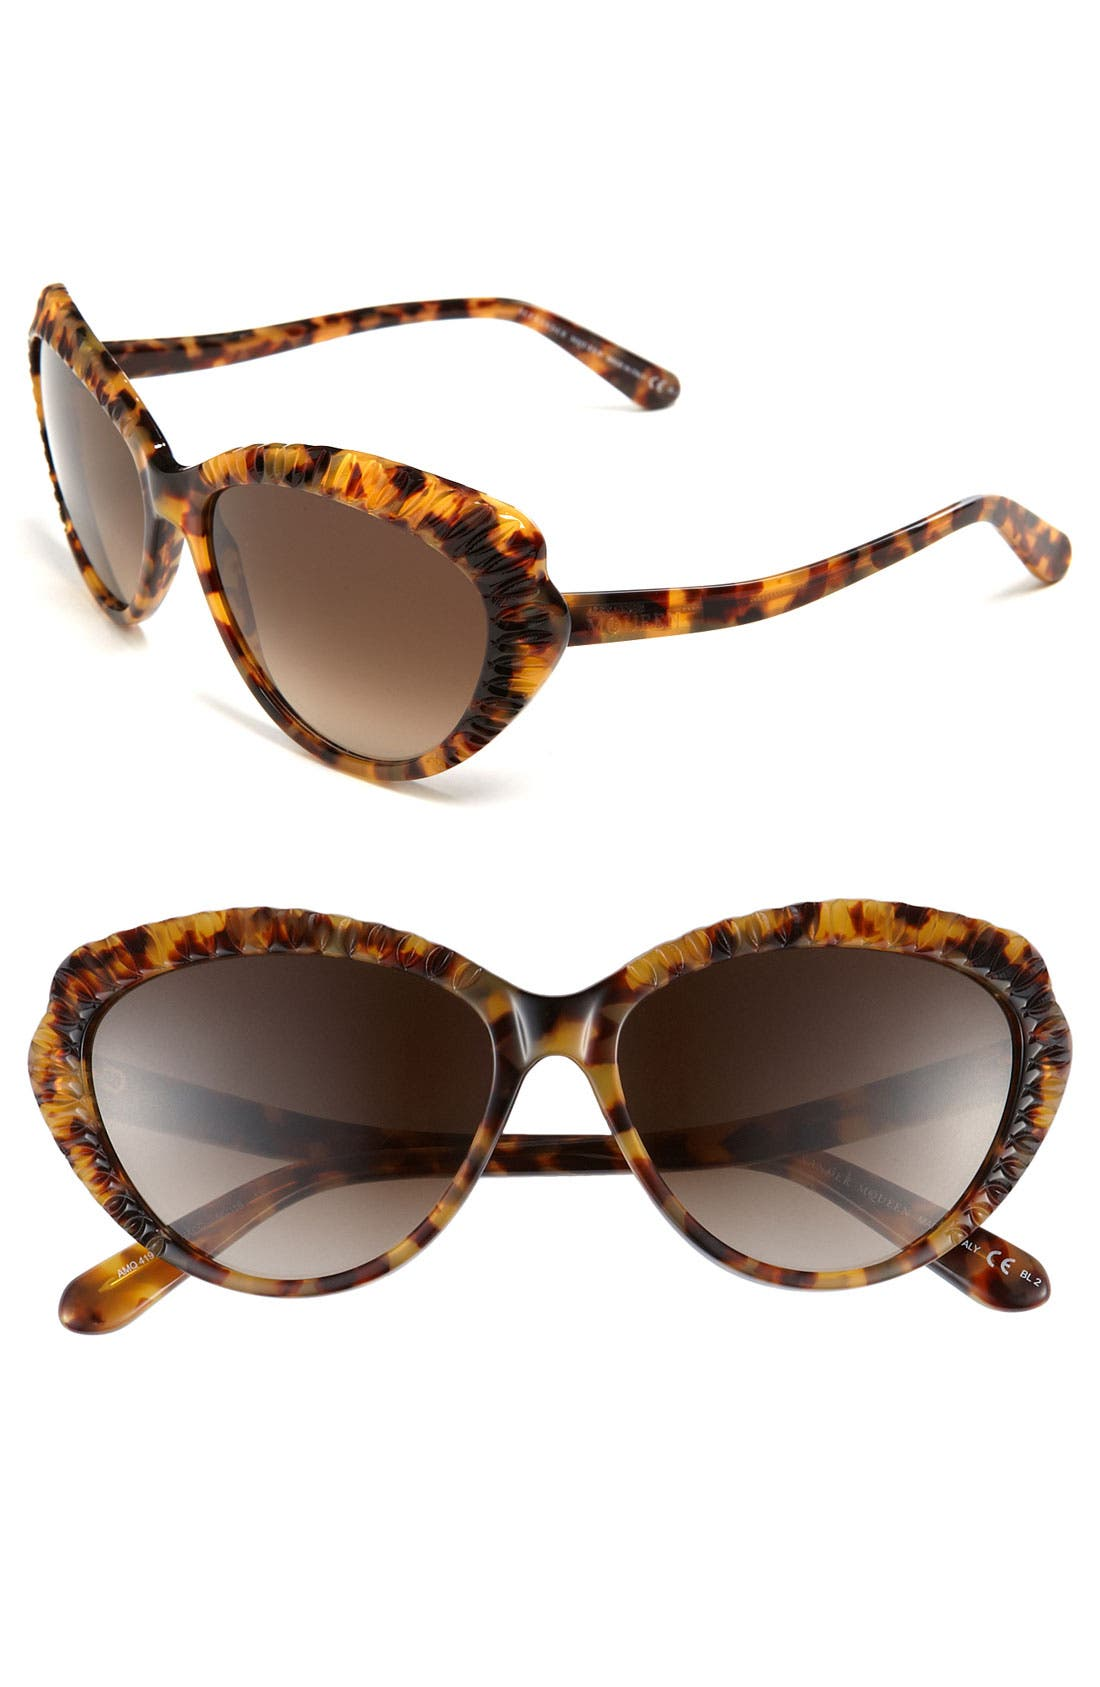 Main Image - Alexander McQueen 56mm Cat Eye Sunglasses